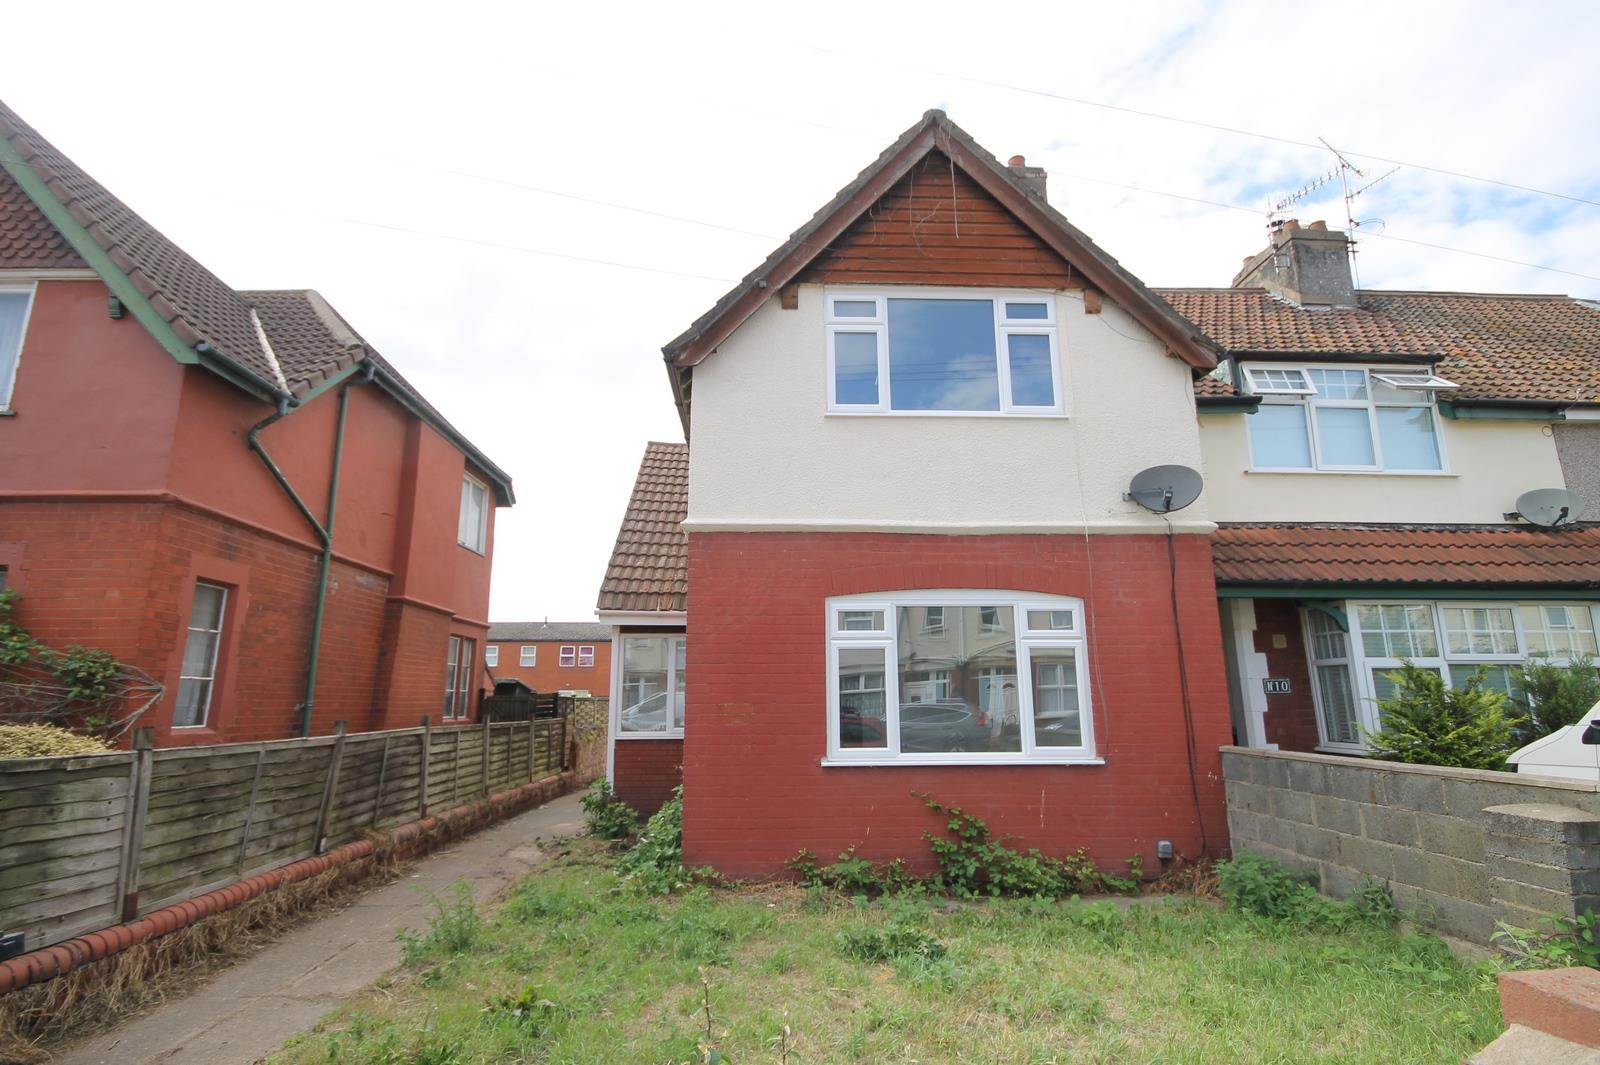 3 bed house to rent in Green Lane, Bristol, BS11